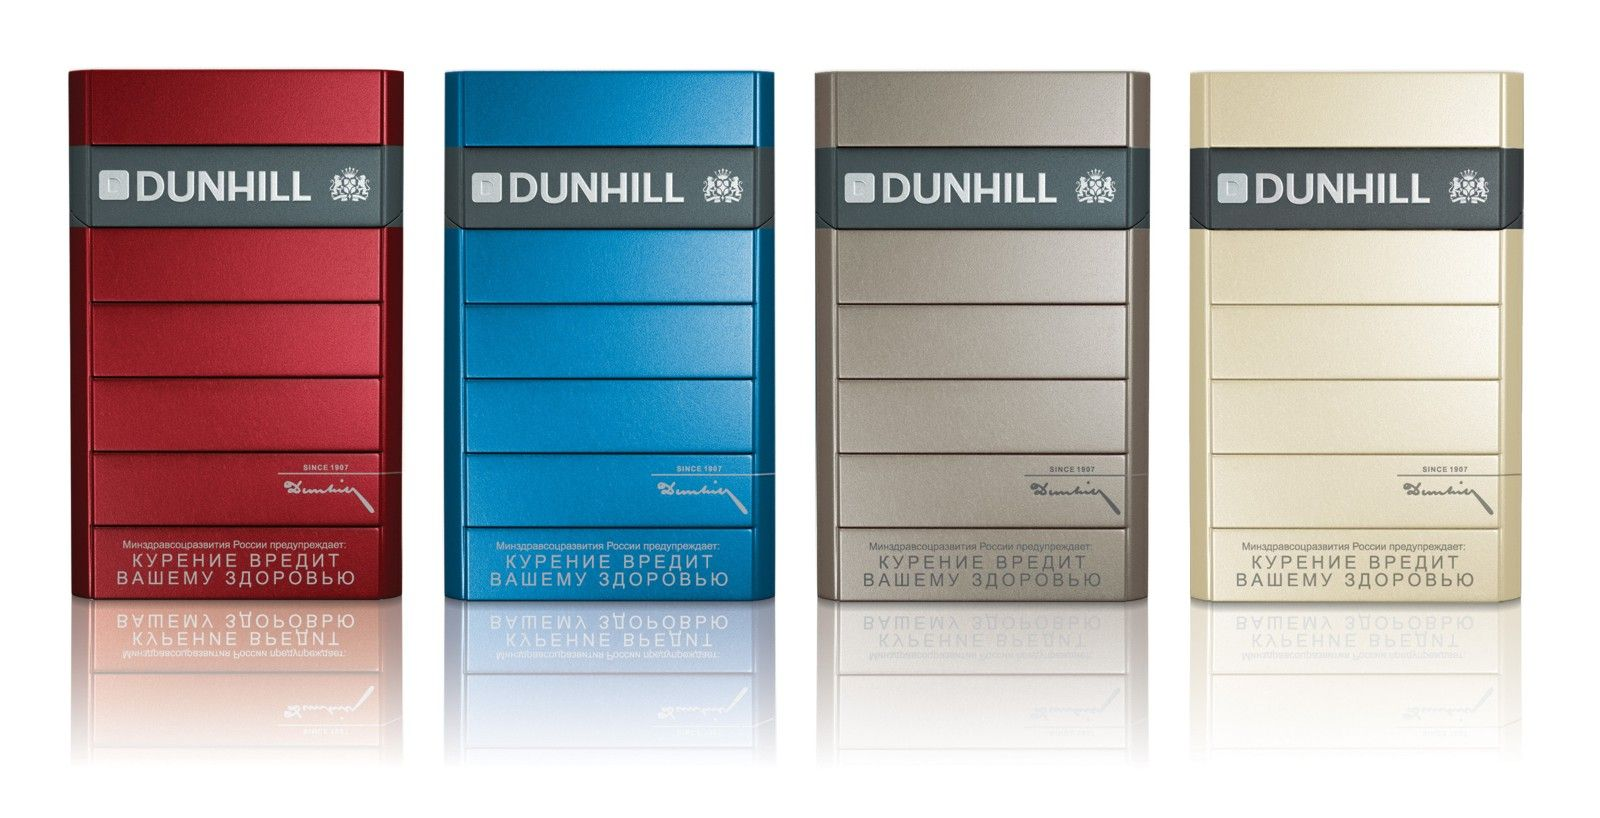 Cost of Dunhill lights in Poland